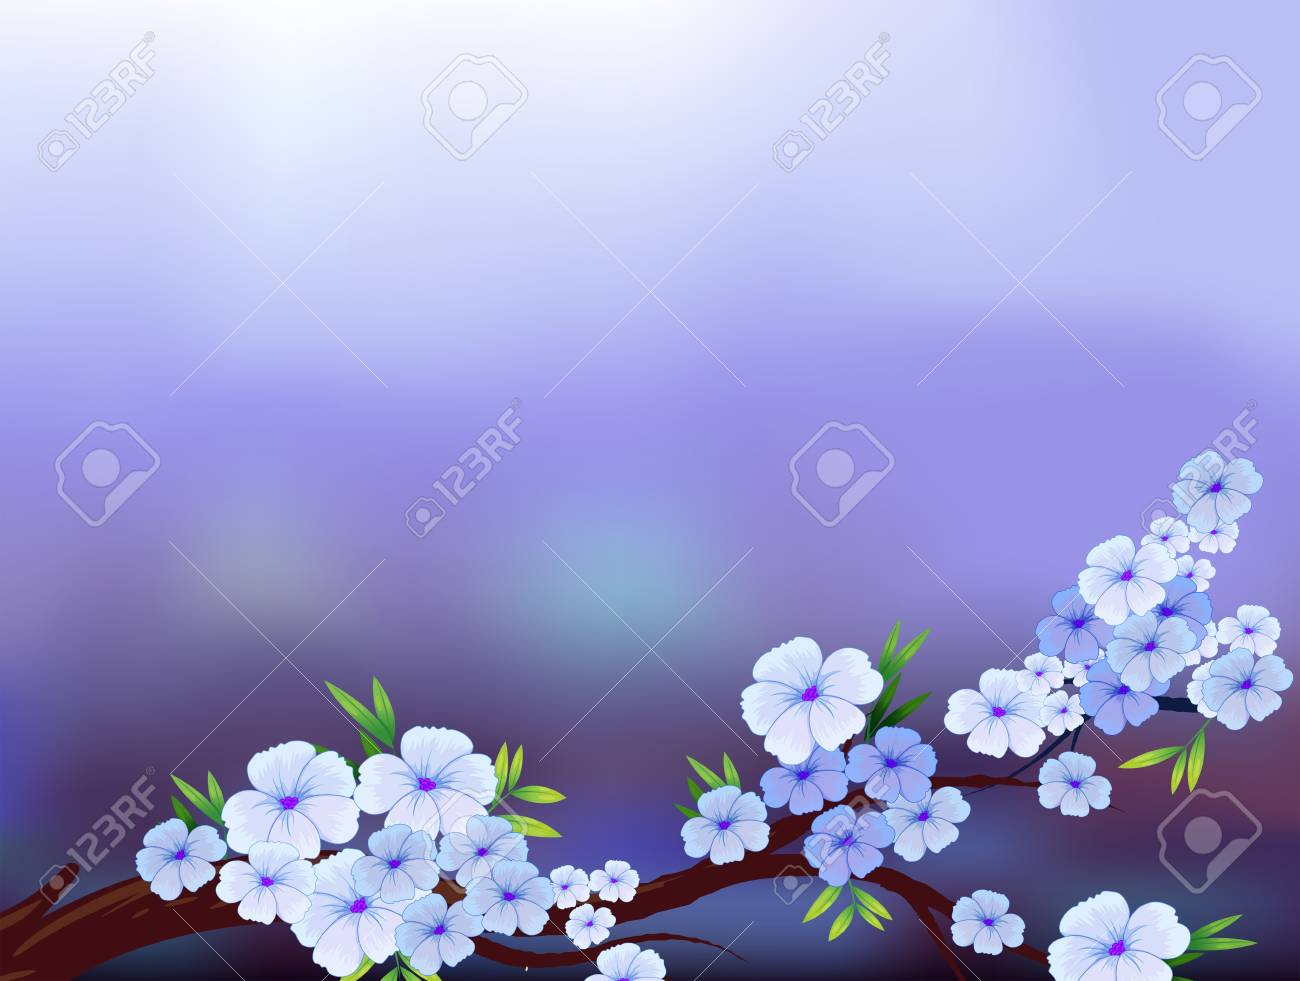 Illustration of a stationery design with blooming flowers Stock Vector - 18610913